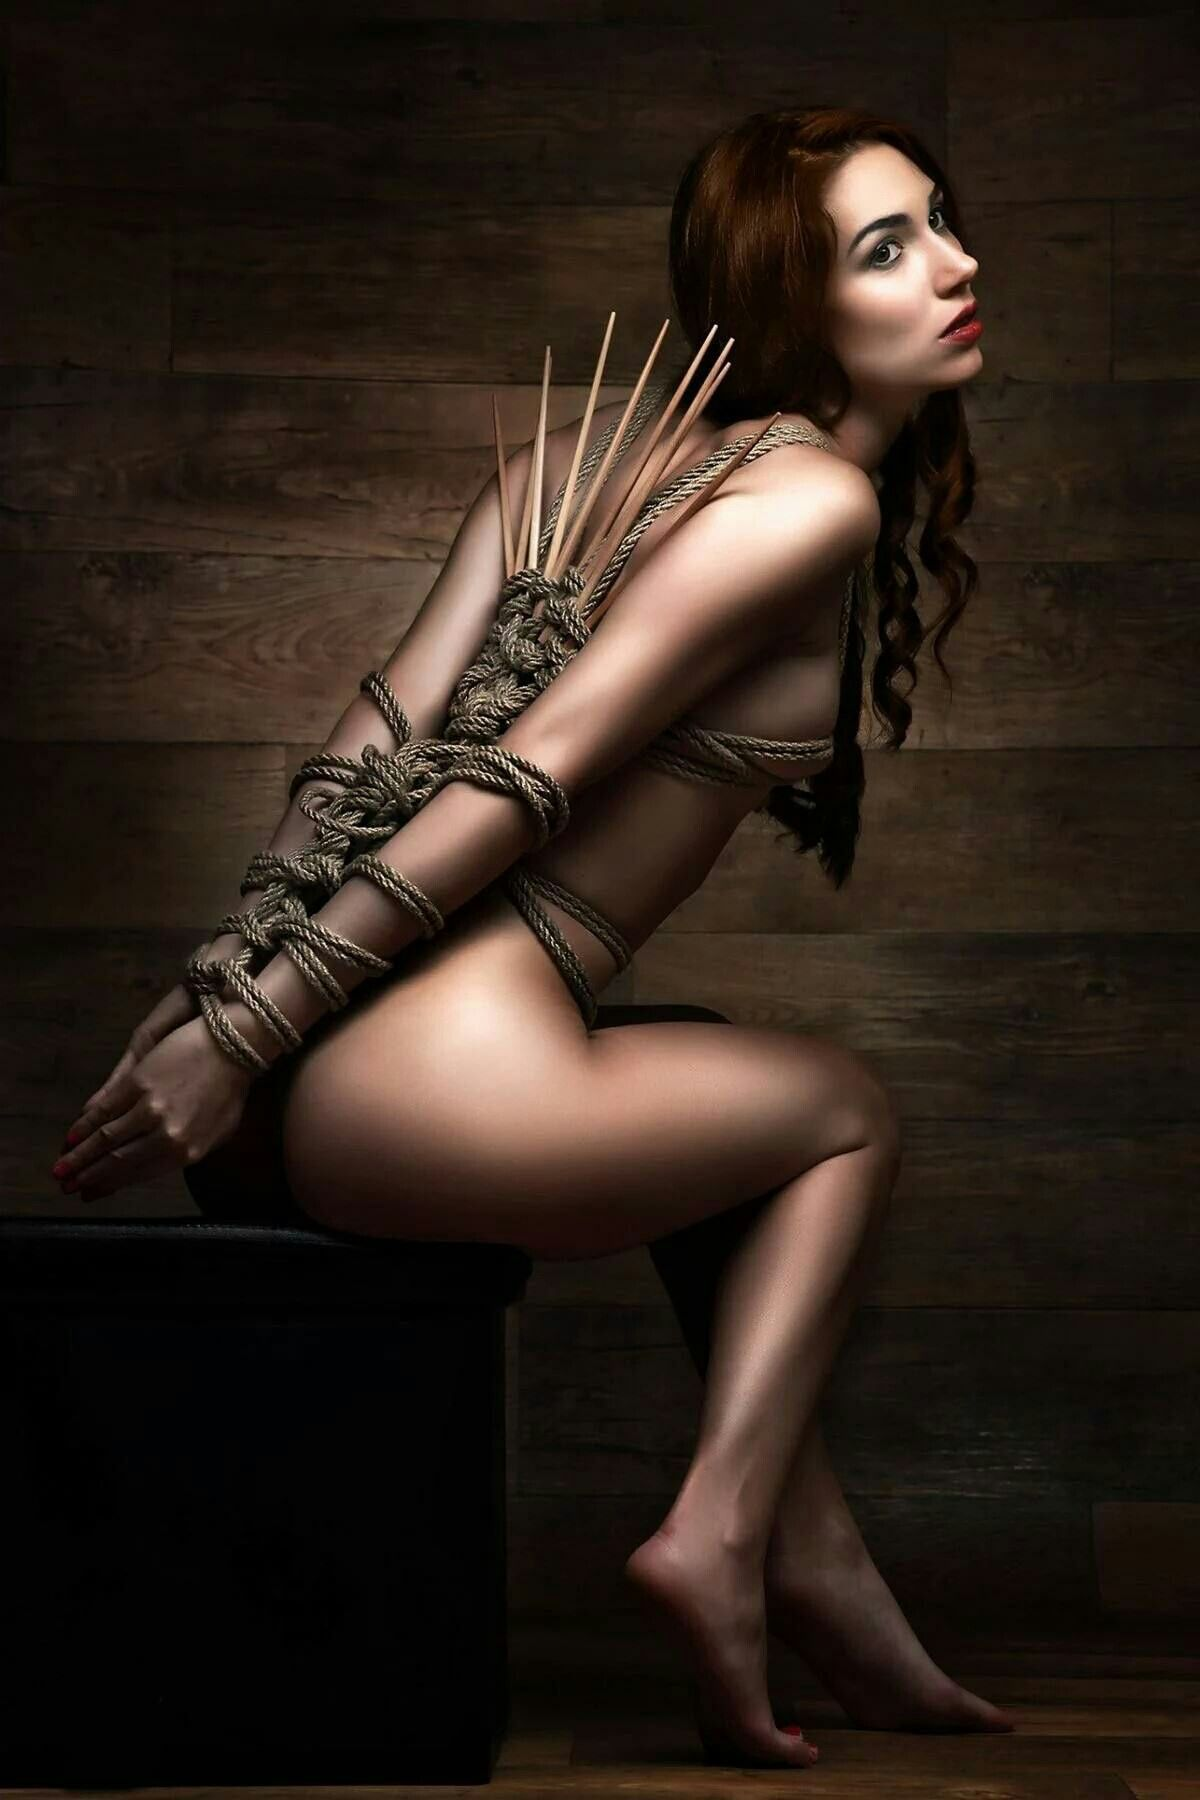 tied naked Babe  Dragonfly Knot with Bamboo Sticks - Fine Art of Bondage Dragonfly knot with  Bamboo Sticks. Nude babe tied with a dragonfly knot combined with some rope  ...